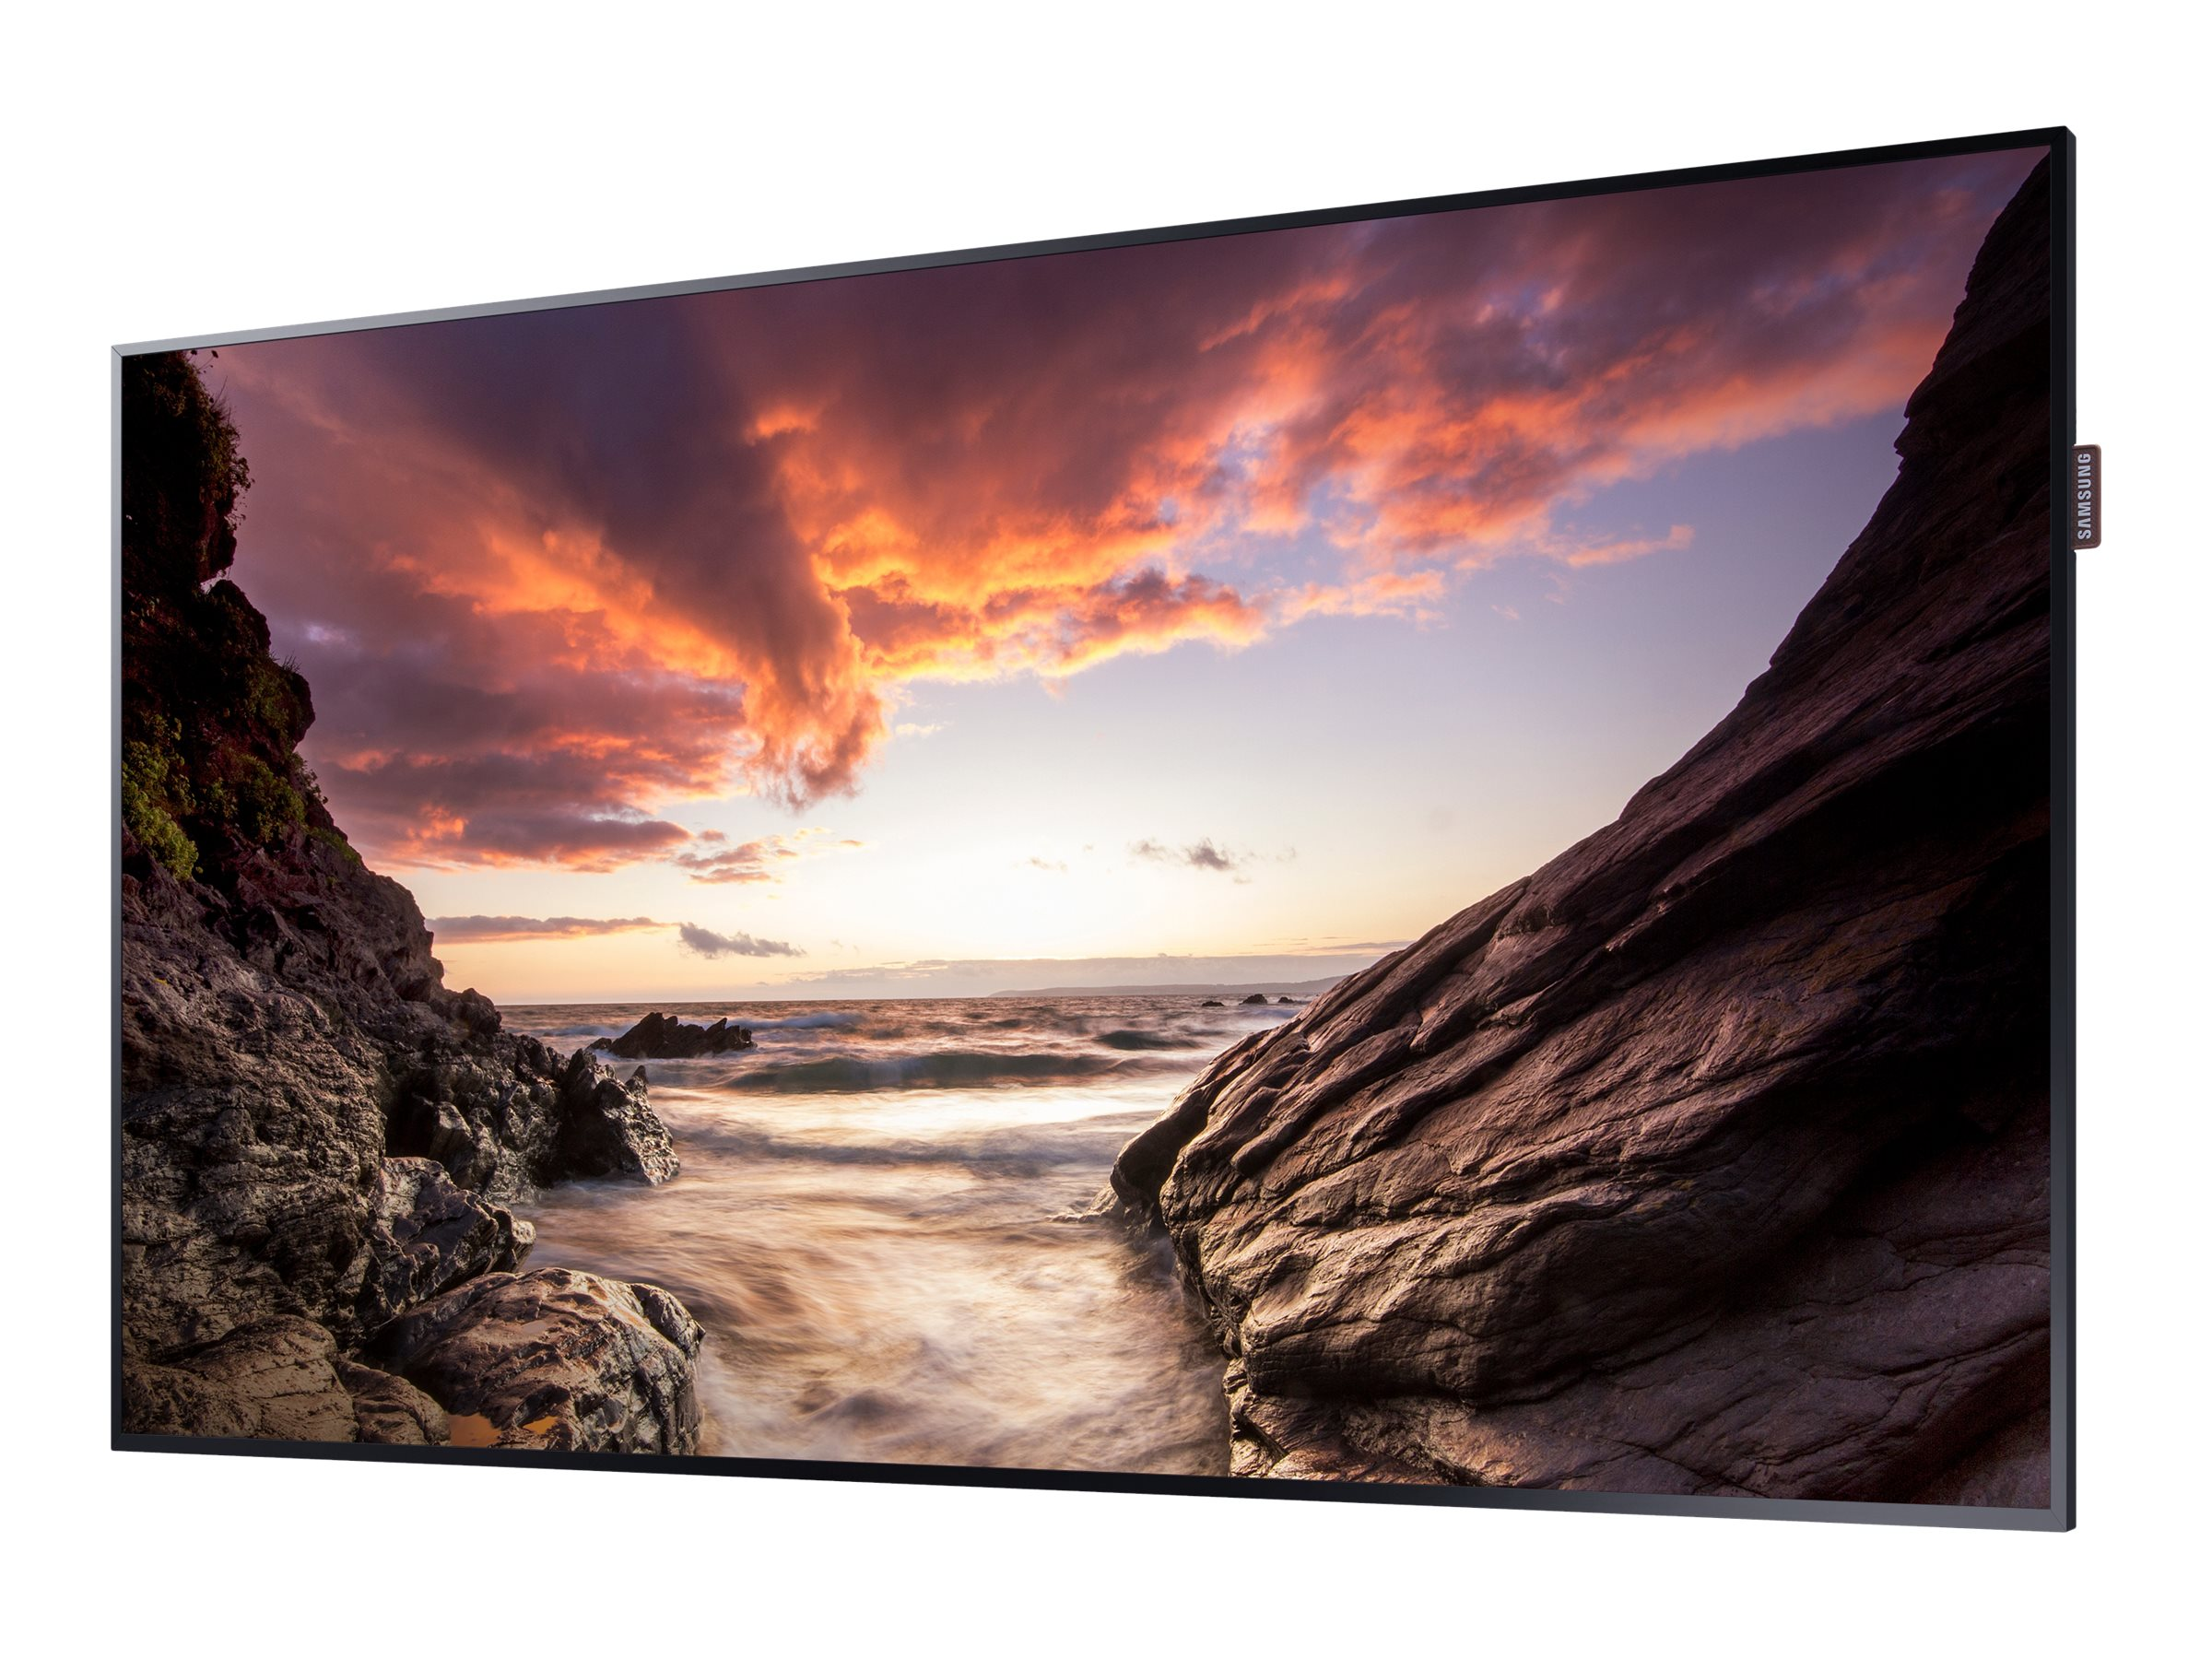 Samsung 55 PHF Full HD LED-LCD Display, Black, PH55F